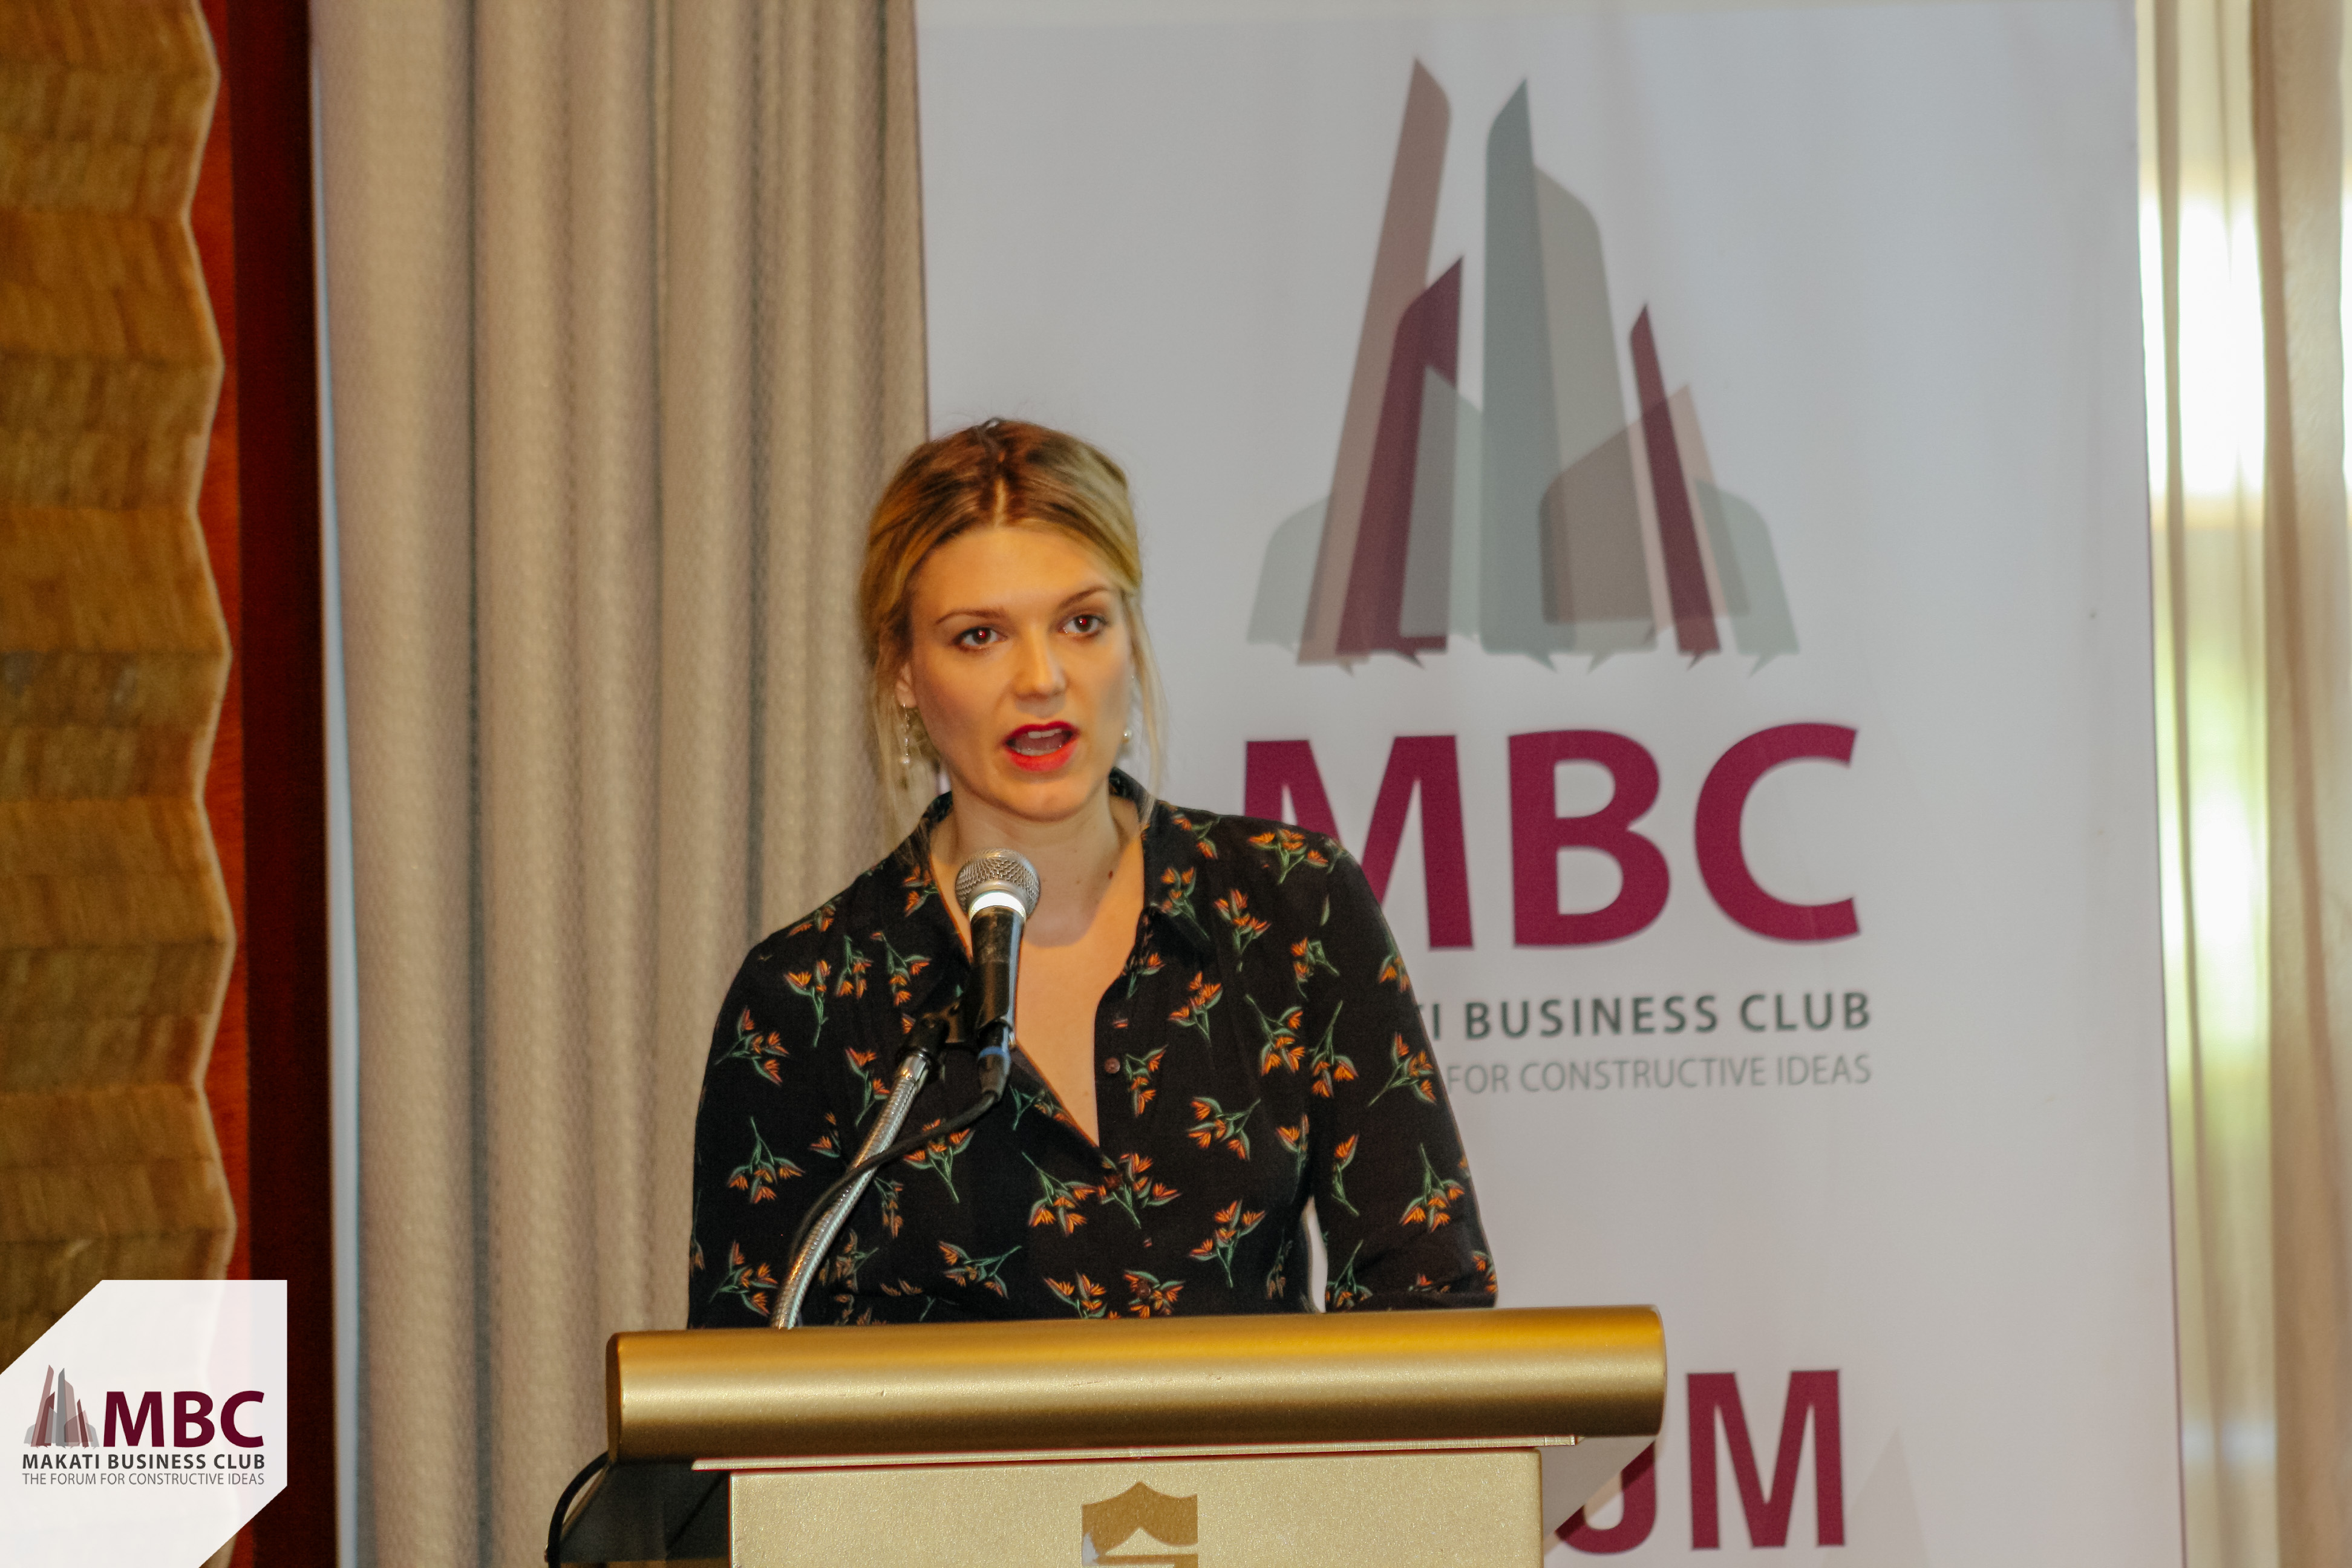 MBC CONDUCTS A HIGH-LEVEL MEETING ON BUSINESS INTEGRITY